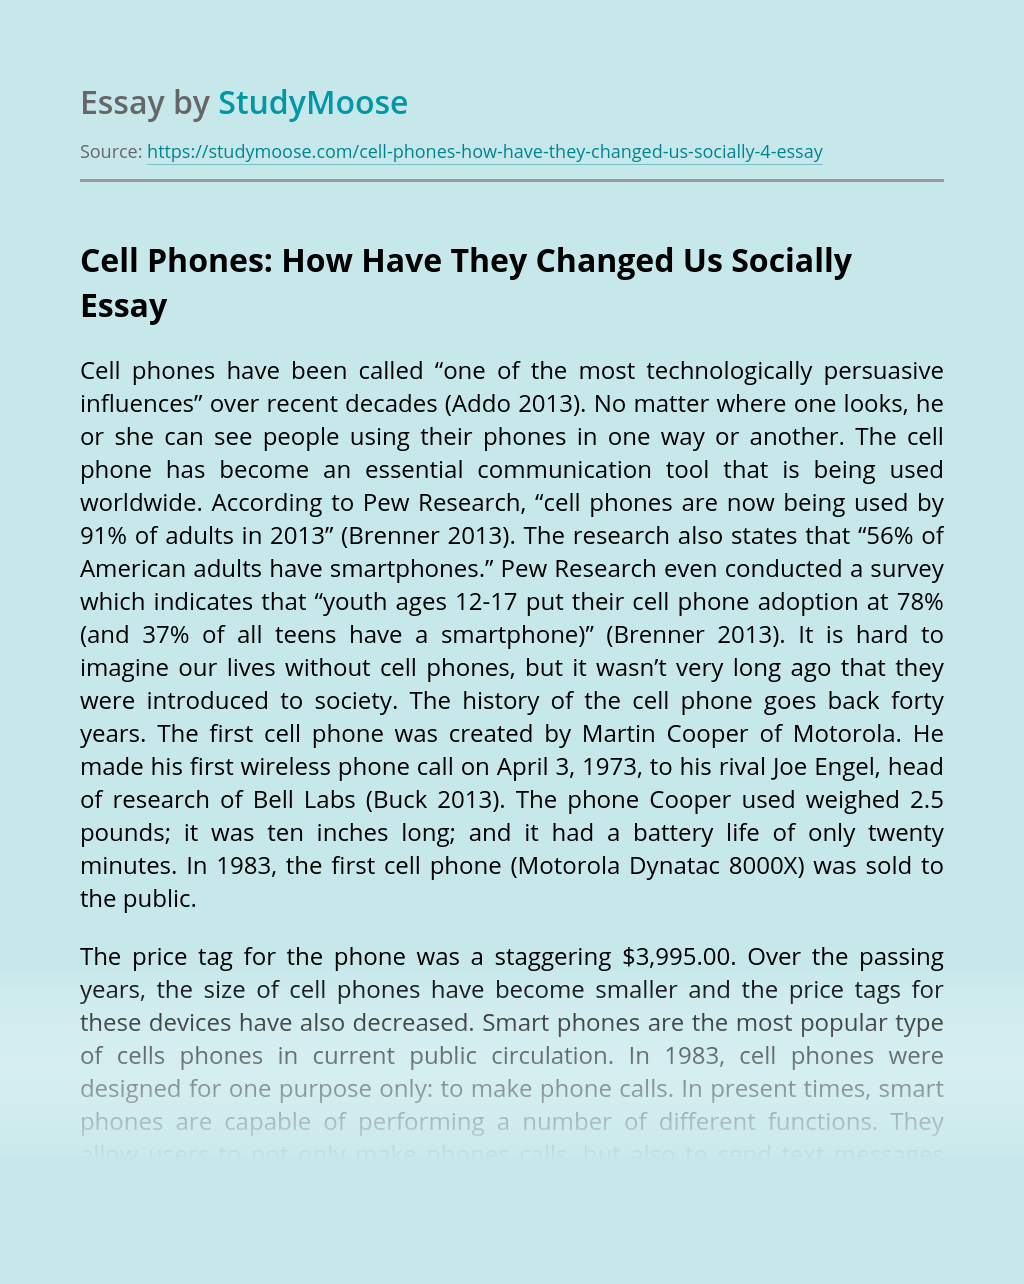 Positive and Negative Impacts of Cell Phones